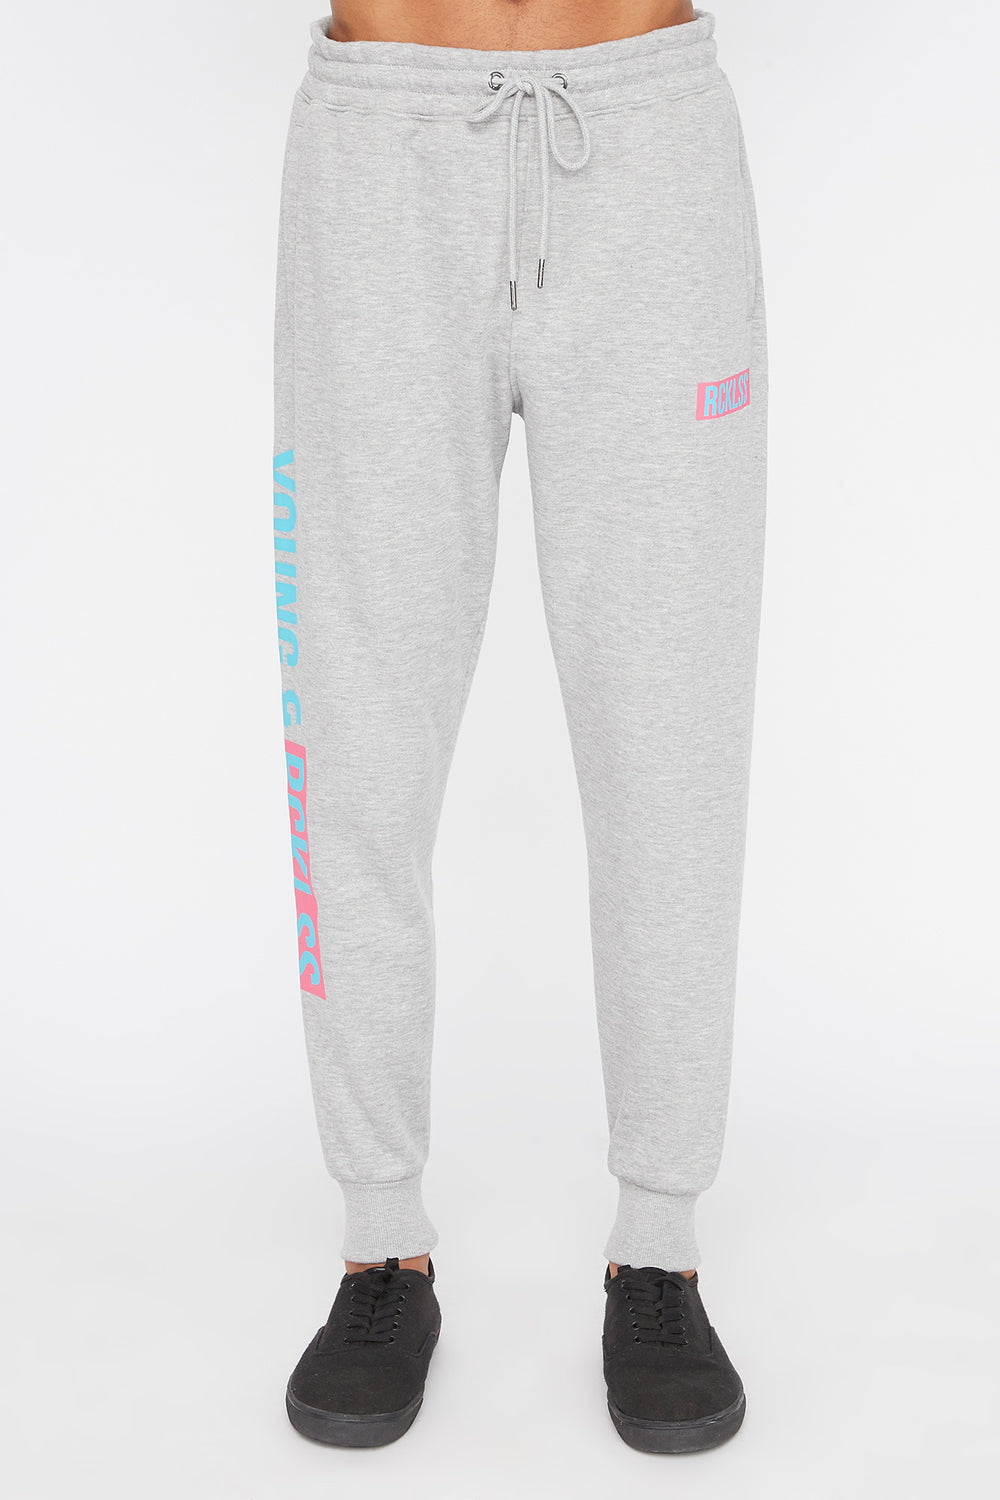 Jogger Logo Retro Young & Reckless Homme Gris